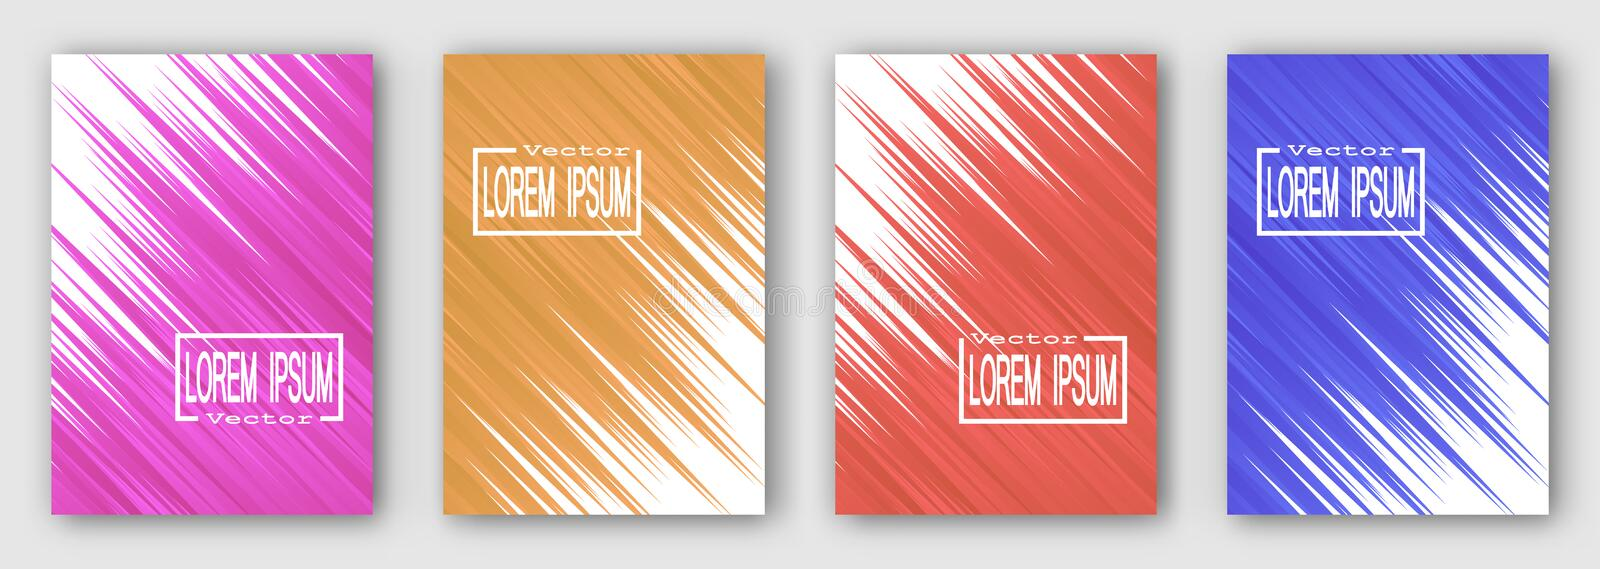 Ensemble de quatre brochures, affiches, insectes Rayures bleues roses de rouge orange diagonalement Pour votre conception illustration de vecteur